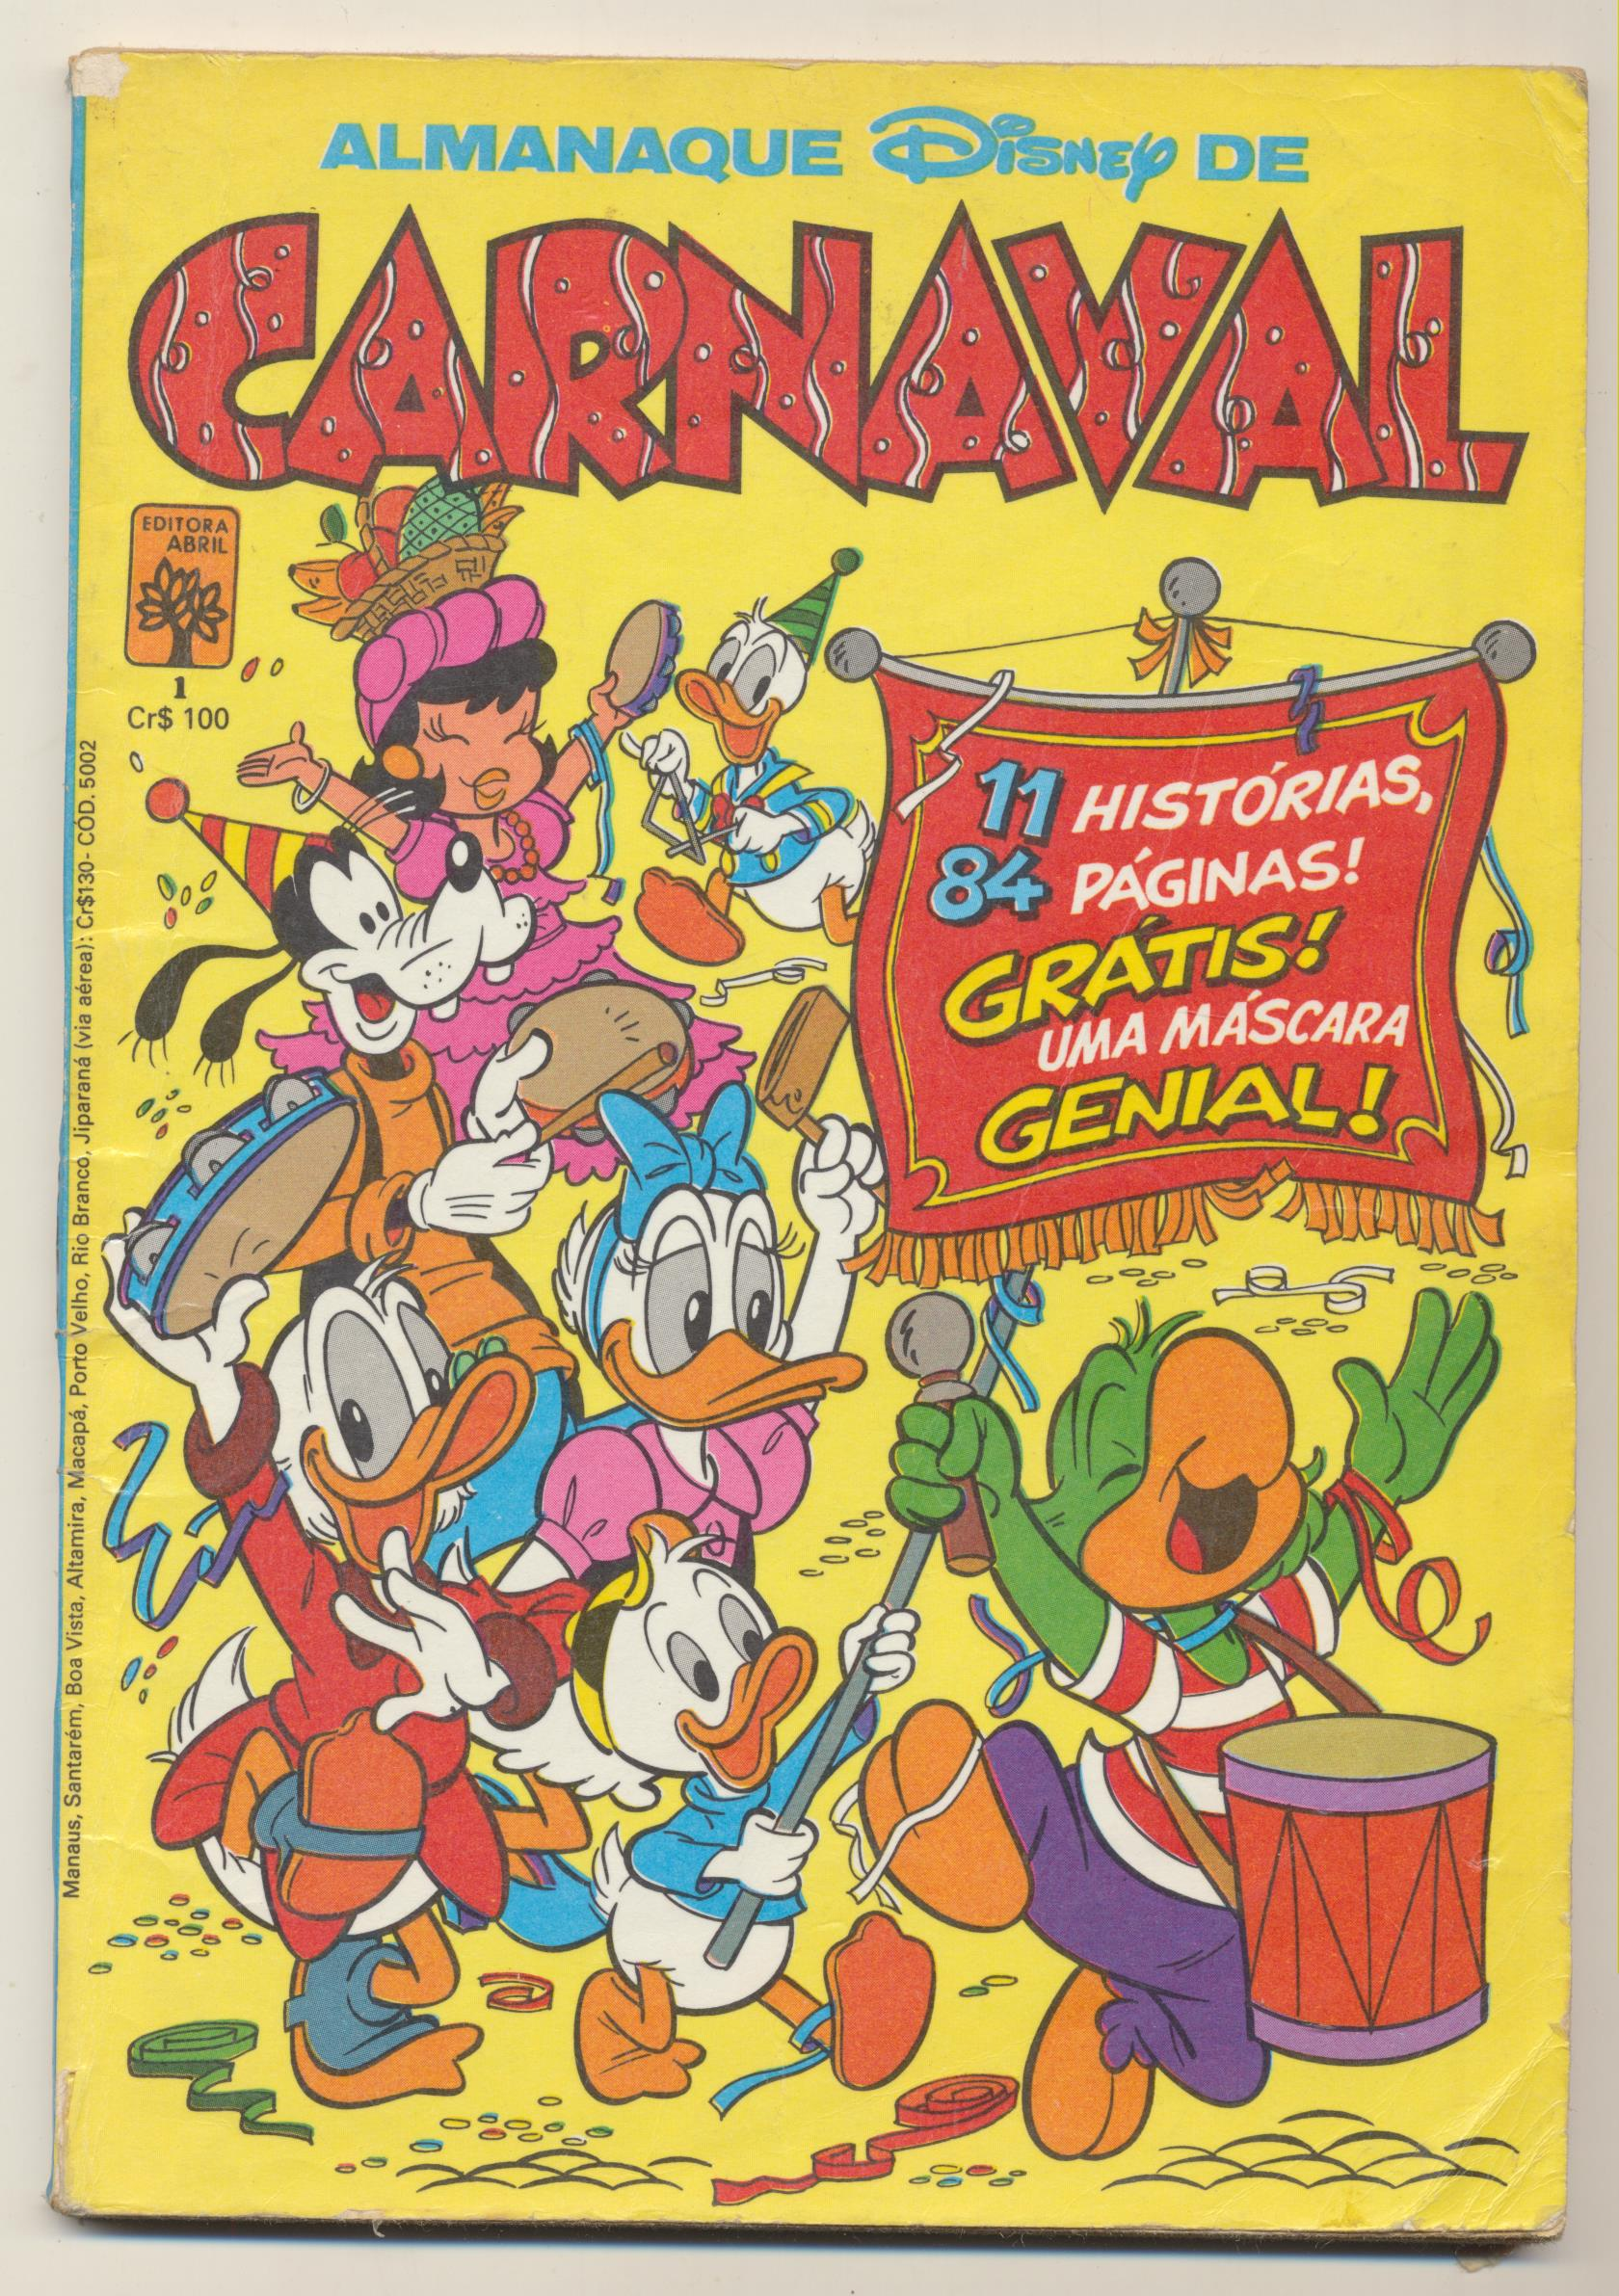 Almanaque Disney de Carnaval nº 1. Sao Paulo. 19x13. 82 paginas color